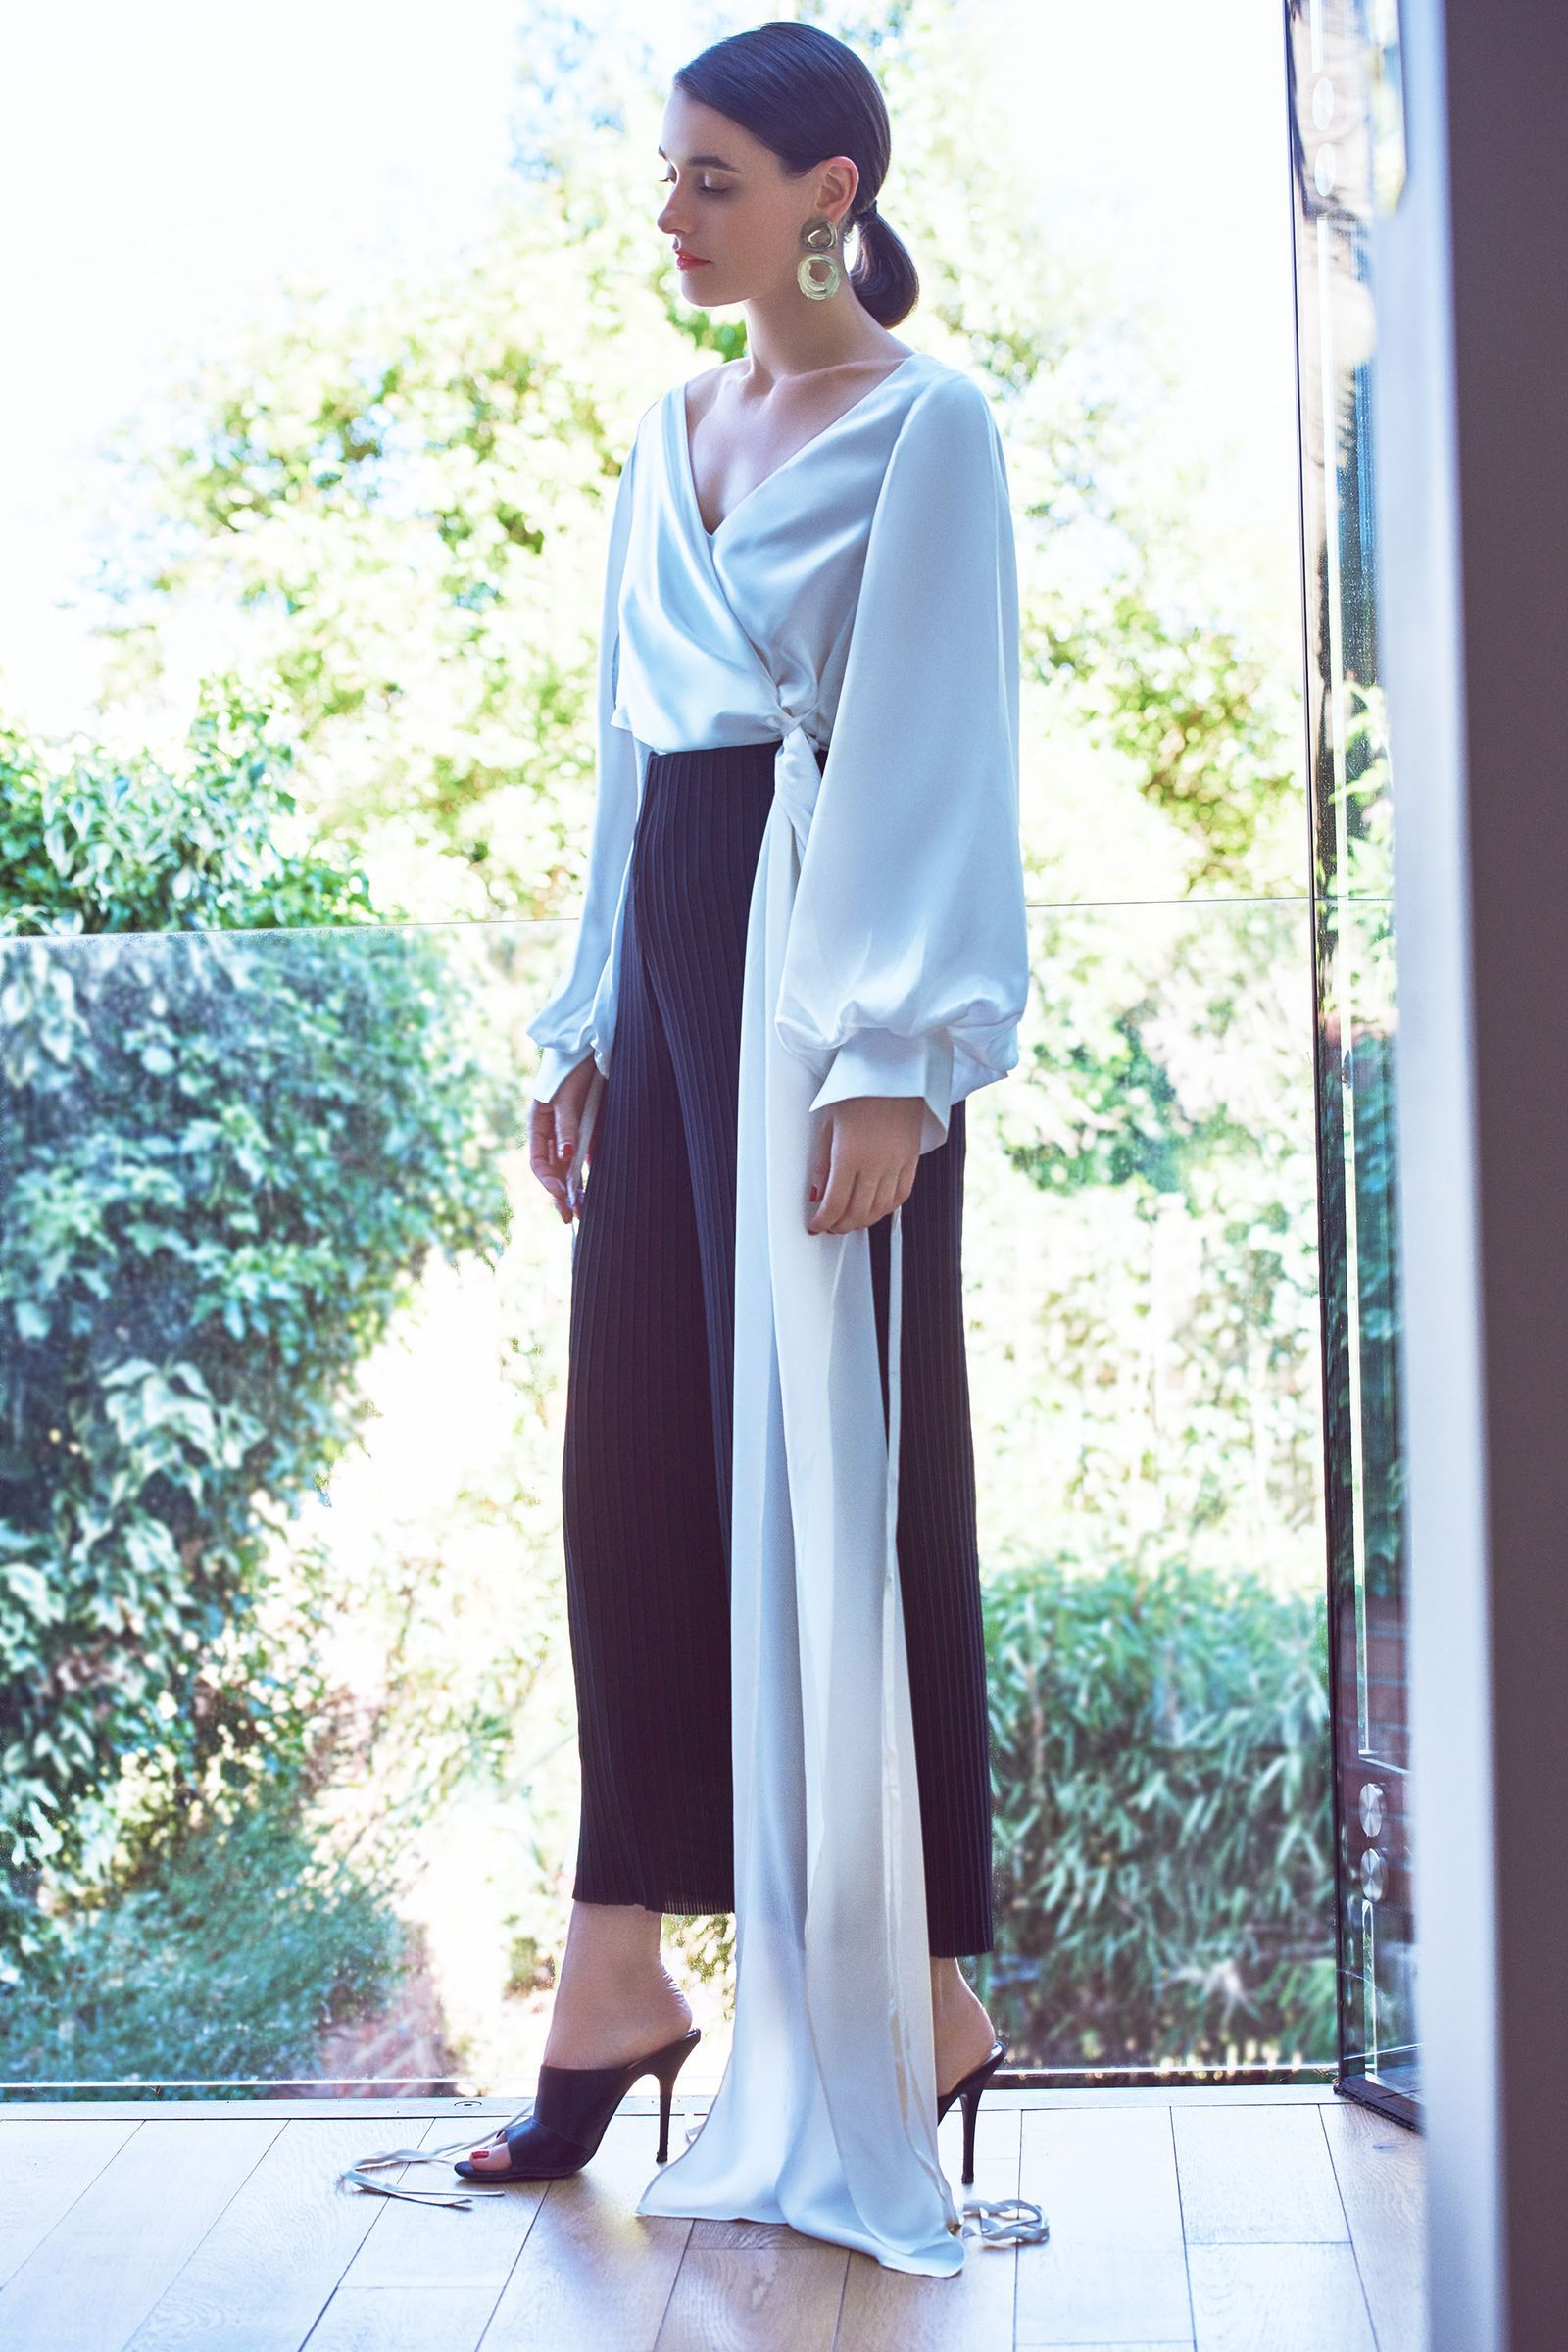 The Solace London Designer Wears The Pants, Four Chic Ways